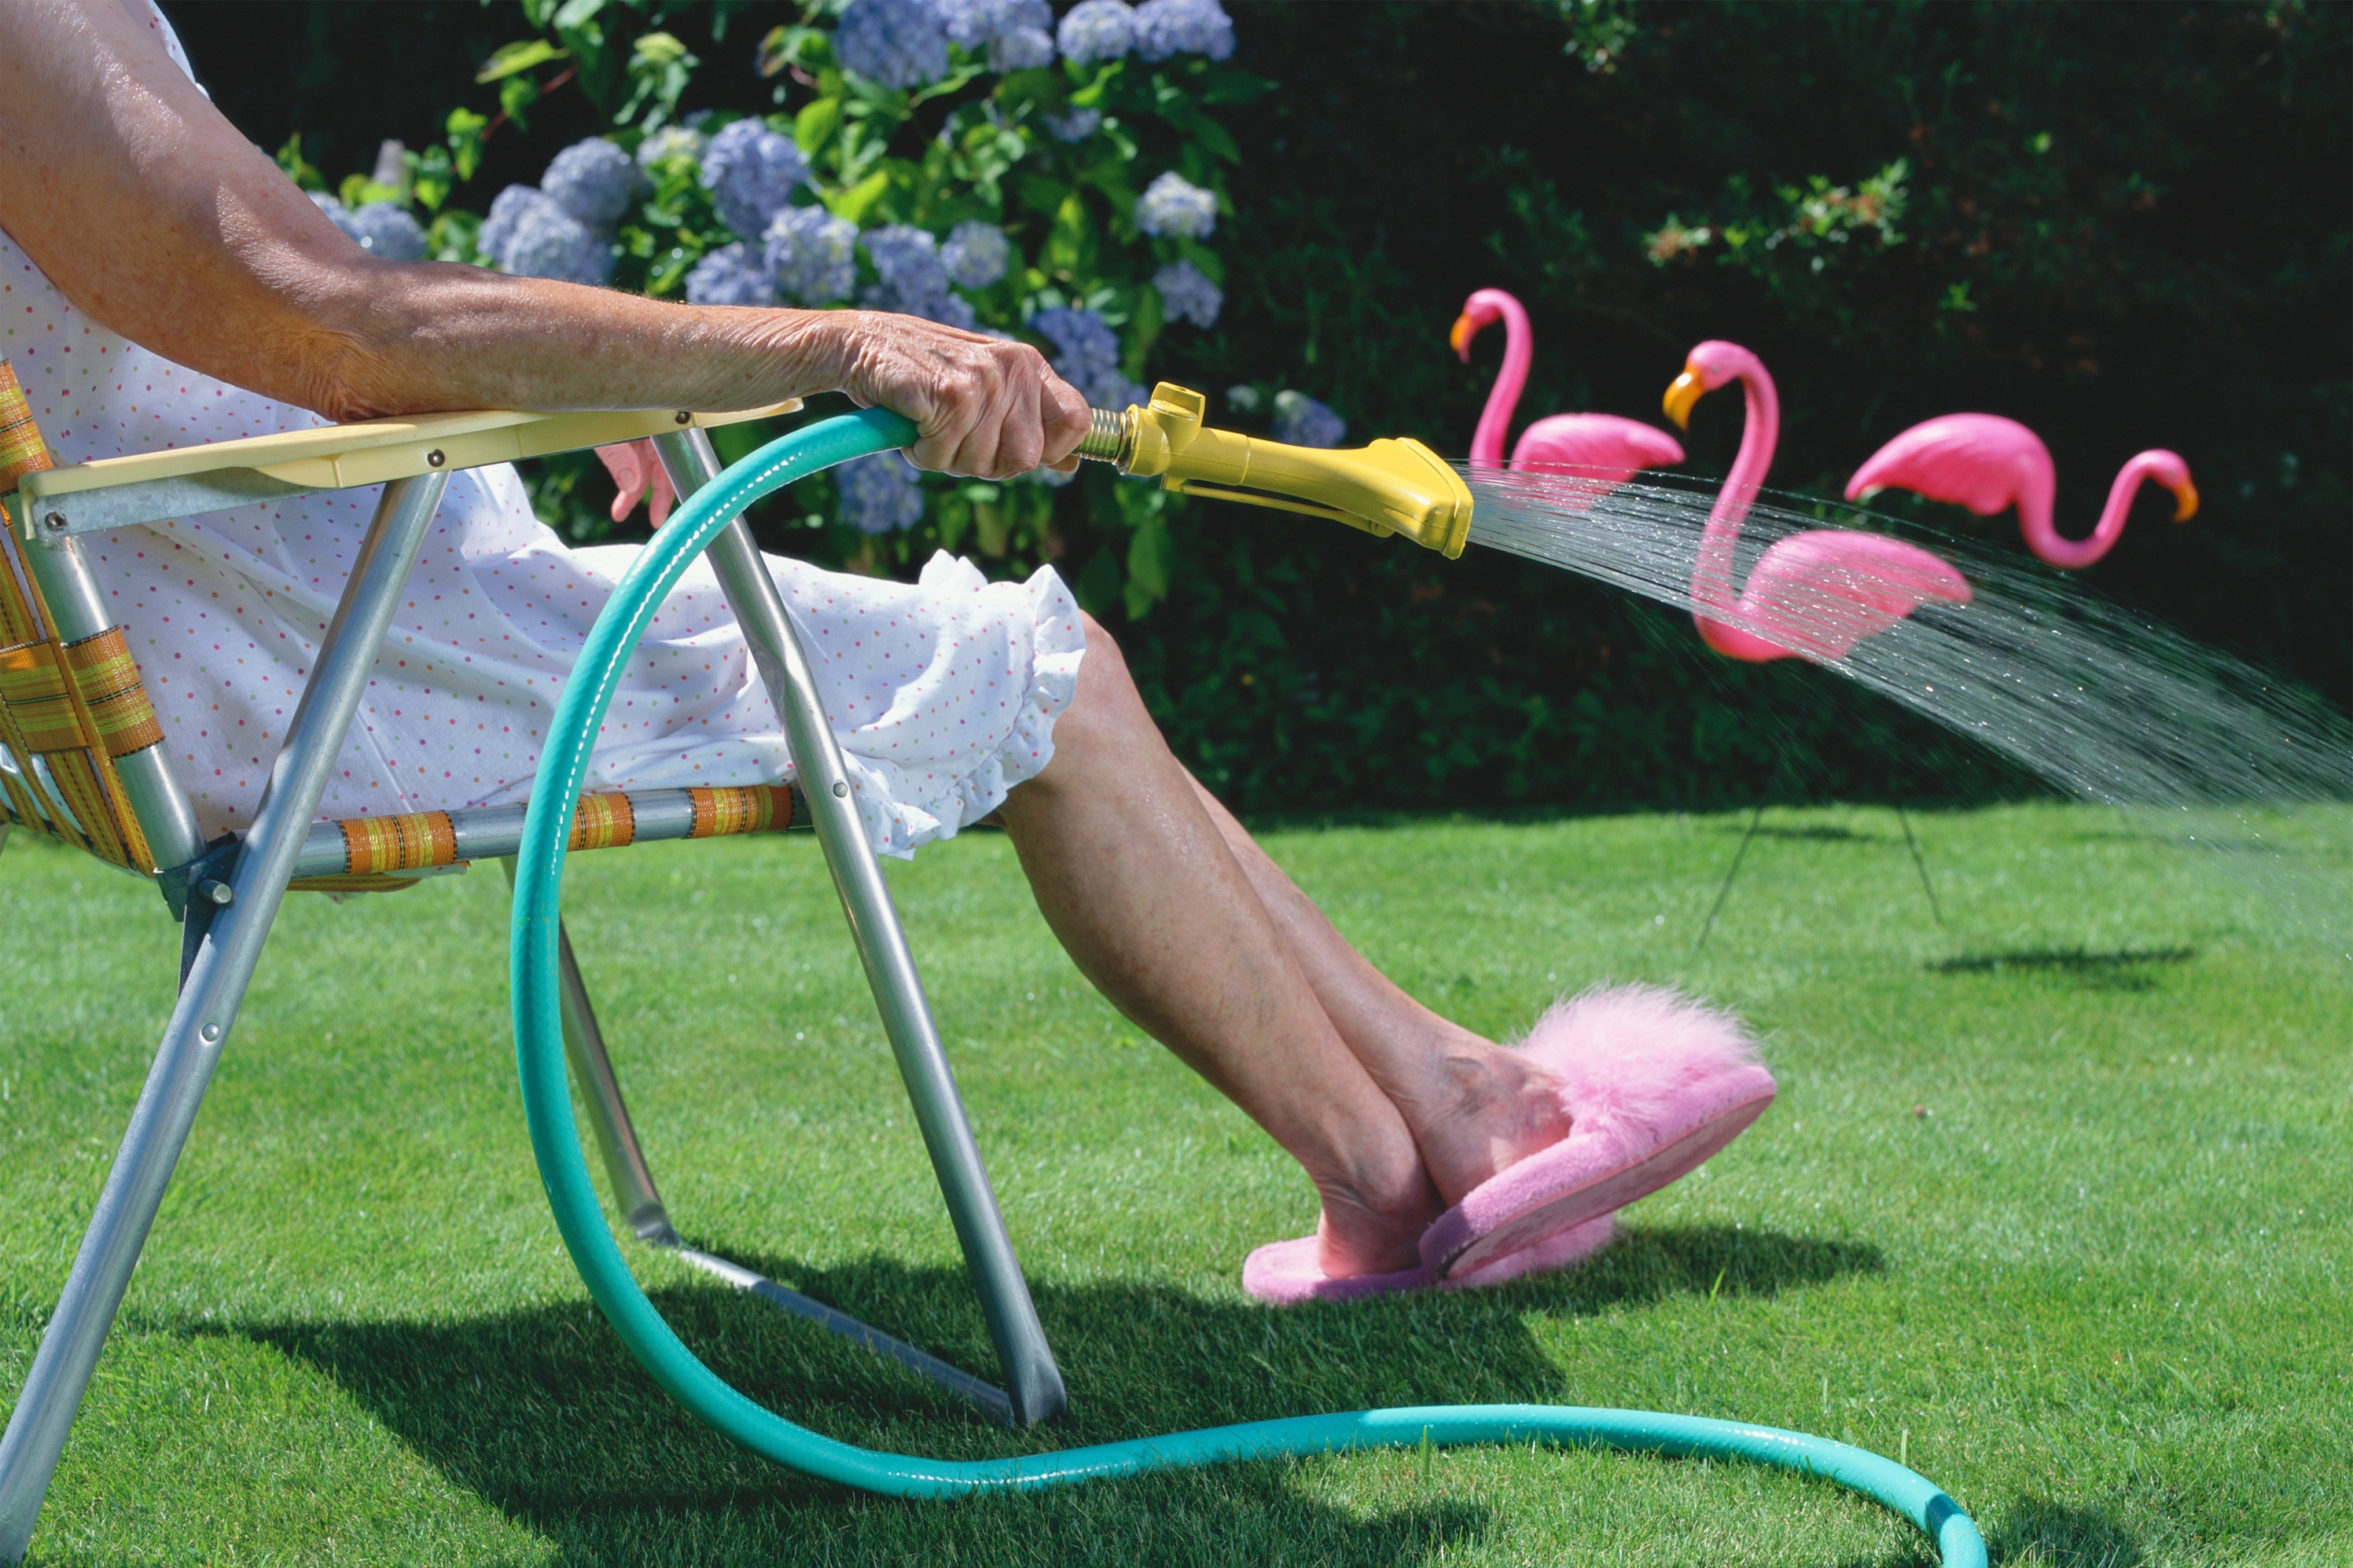 Old woman in lawn chair watering lawn with pink flamingoes